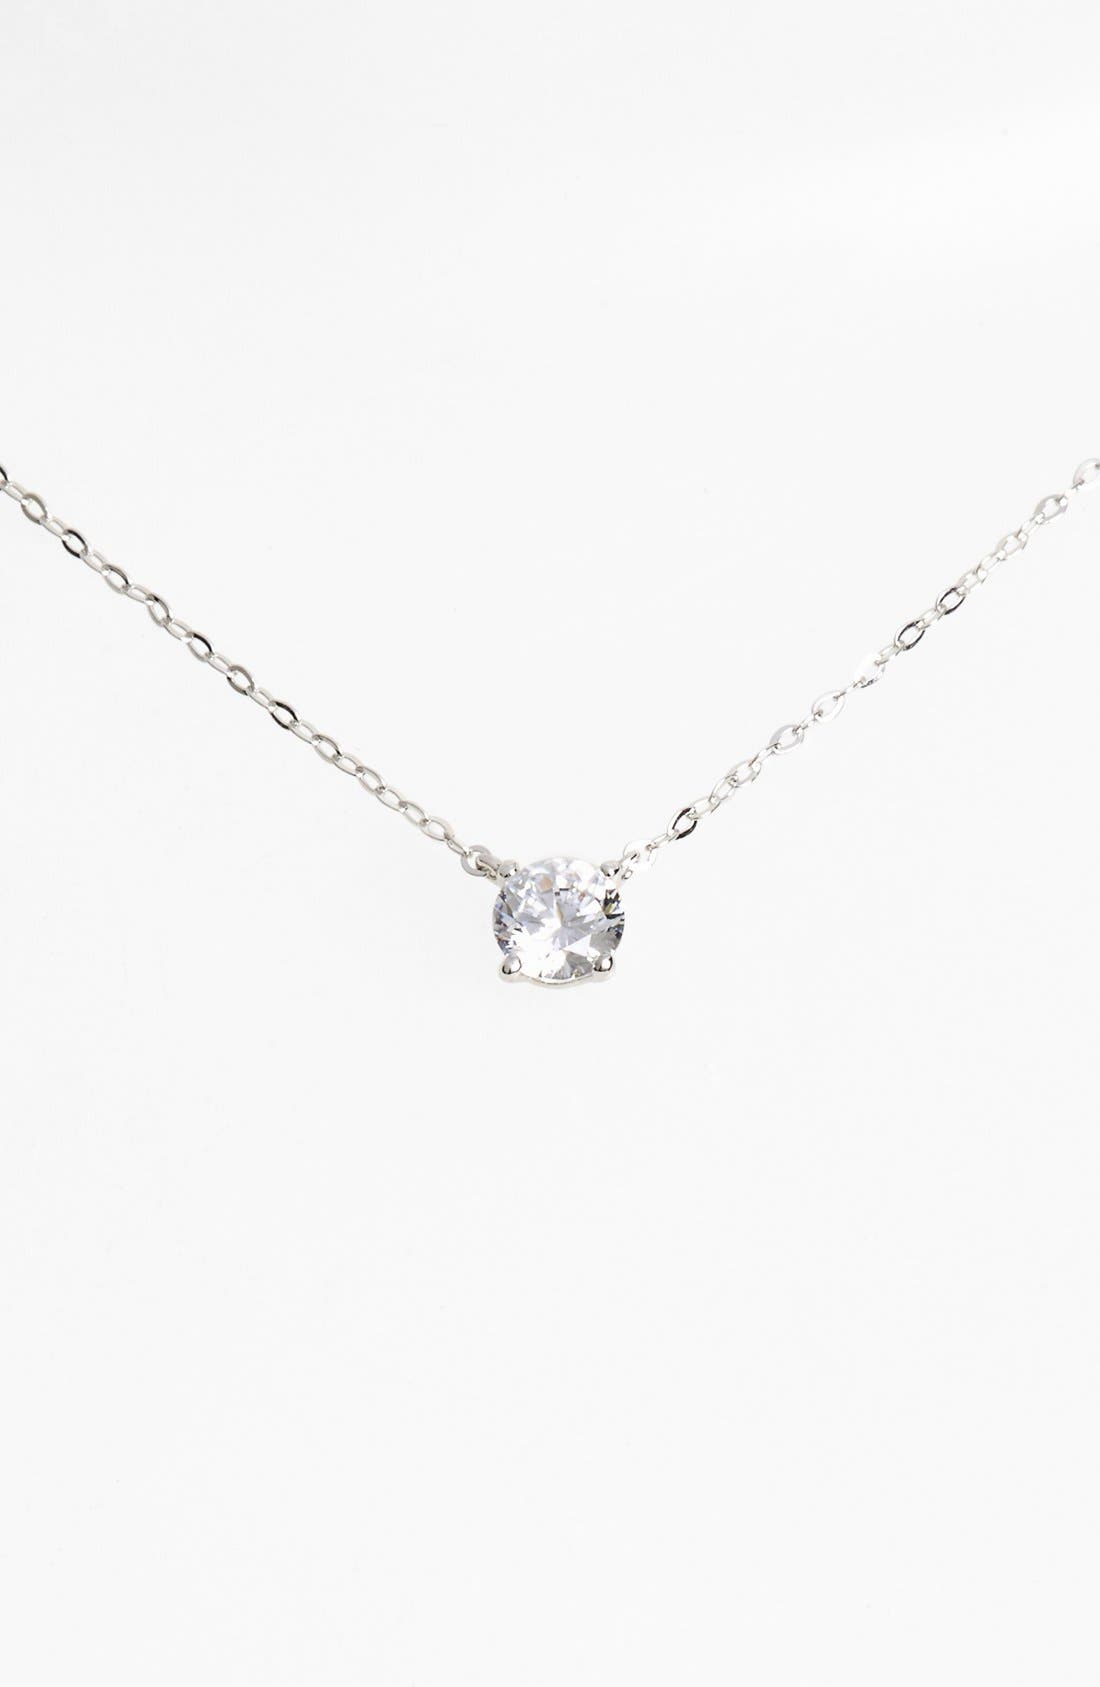 Cubic Zirconia Pendant Necklace,                         Main,                         color, SILVER